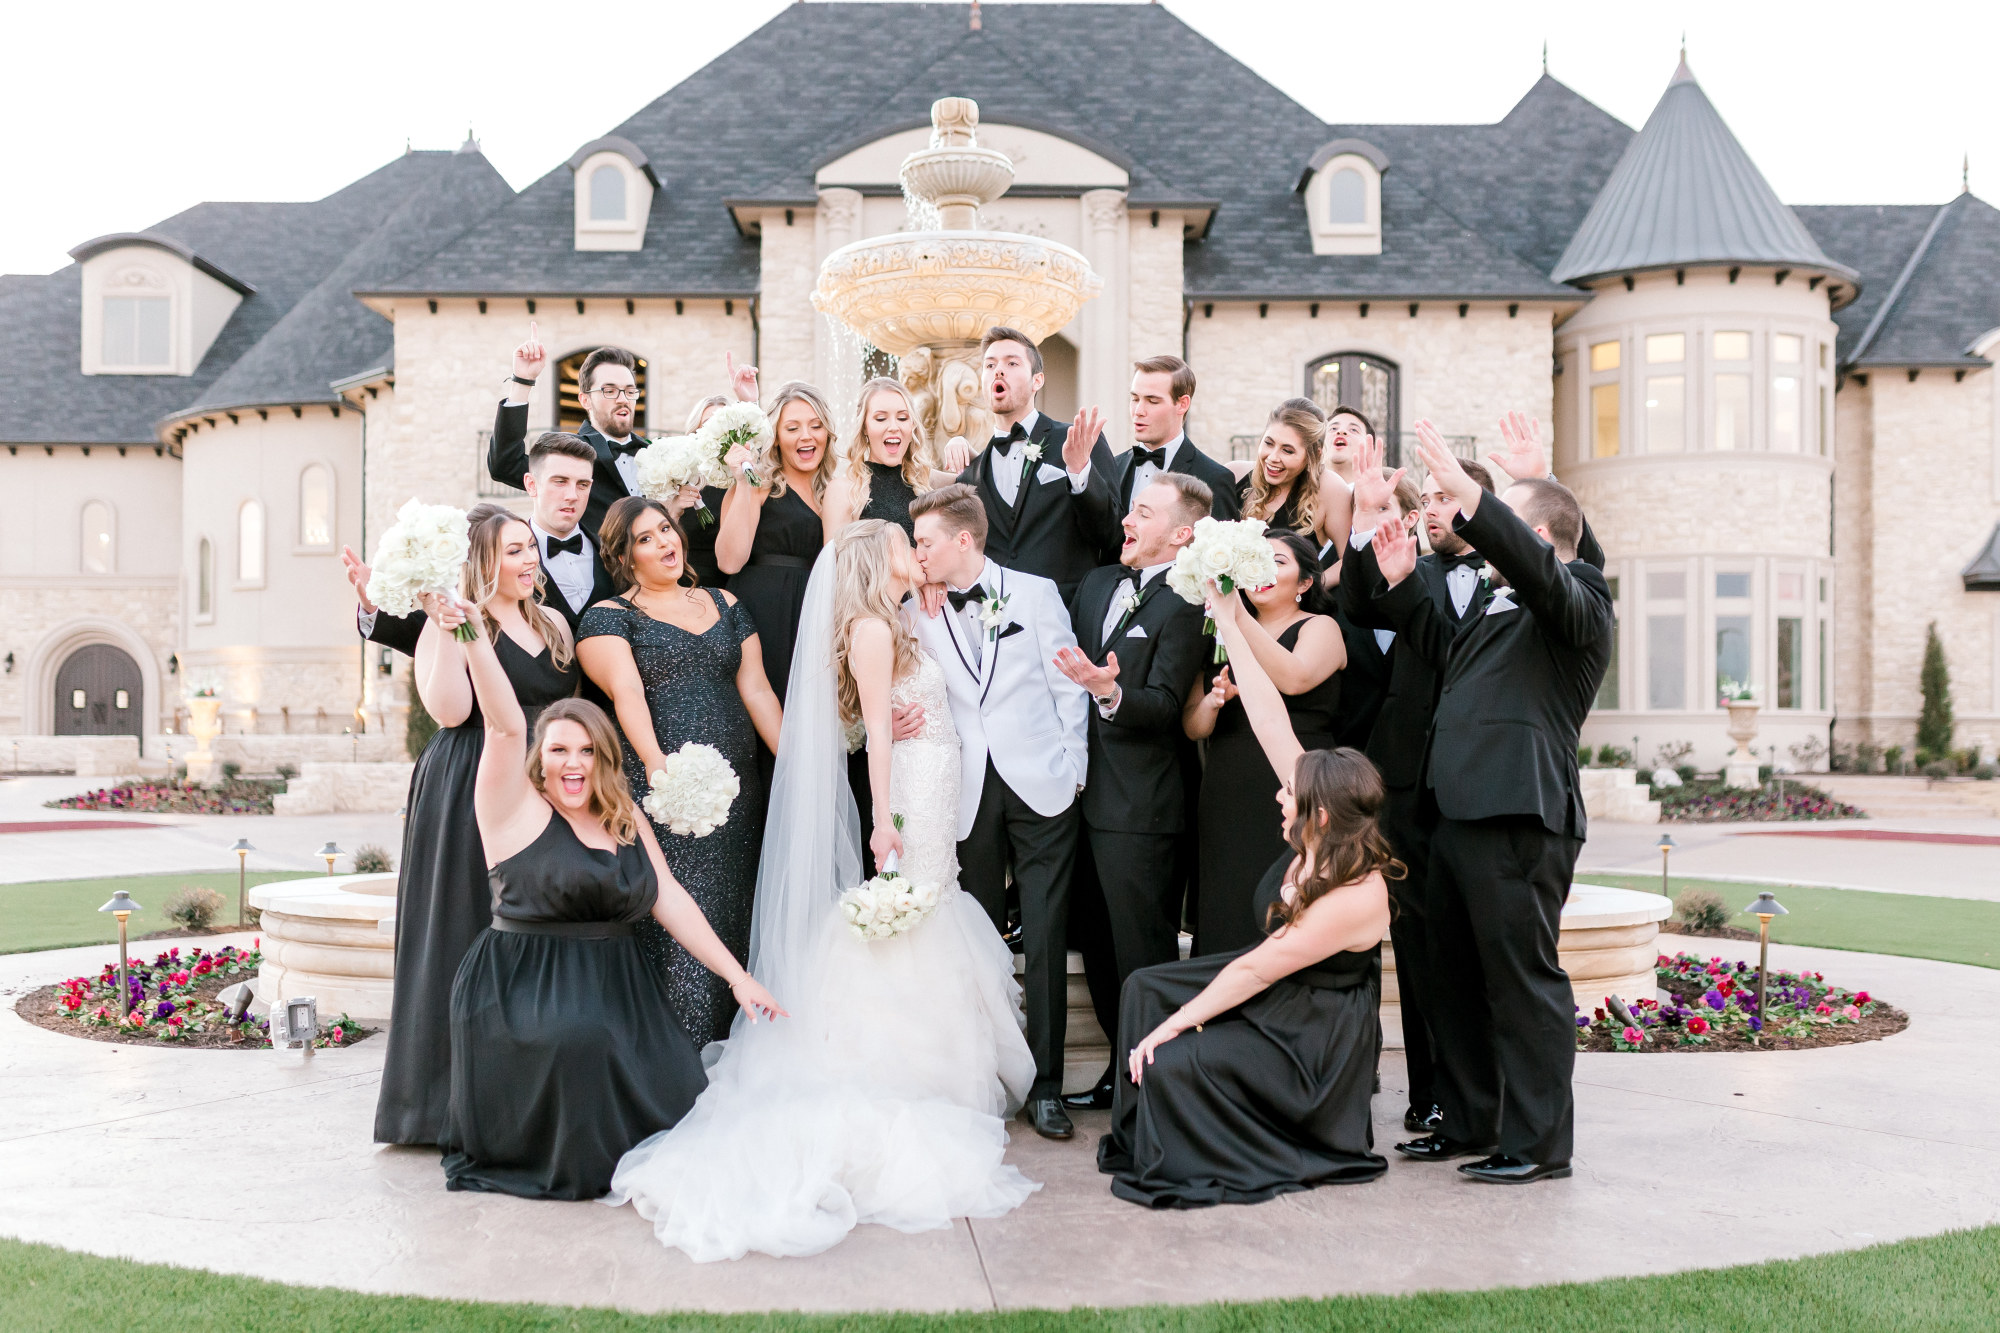 bridal party - Hannah Way Photography - Dallas wedding photographer - luxury weddings - luxury wedding photographer - dfw wedding photographer - best wedding photographer - Dallas best wedding photographer - knotting hill place